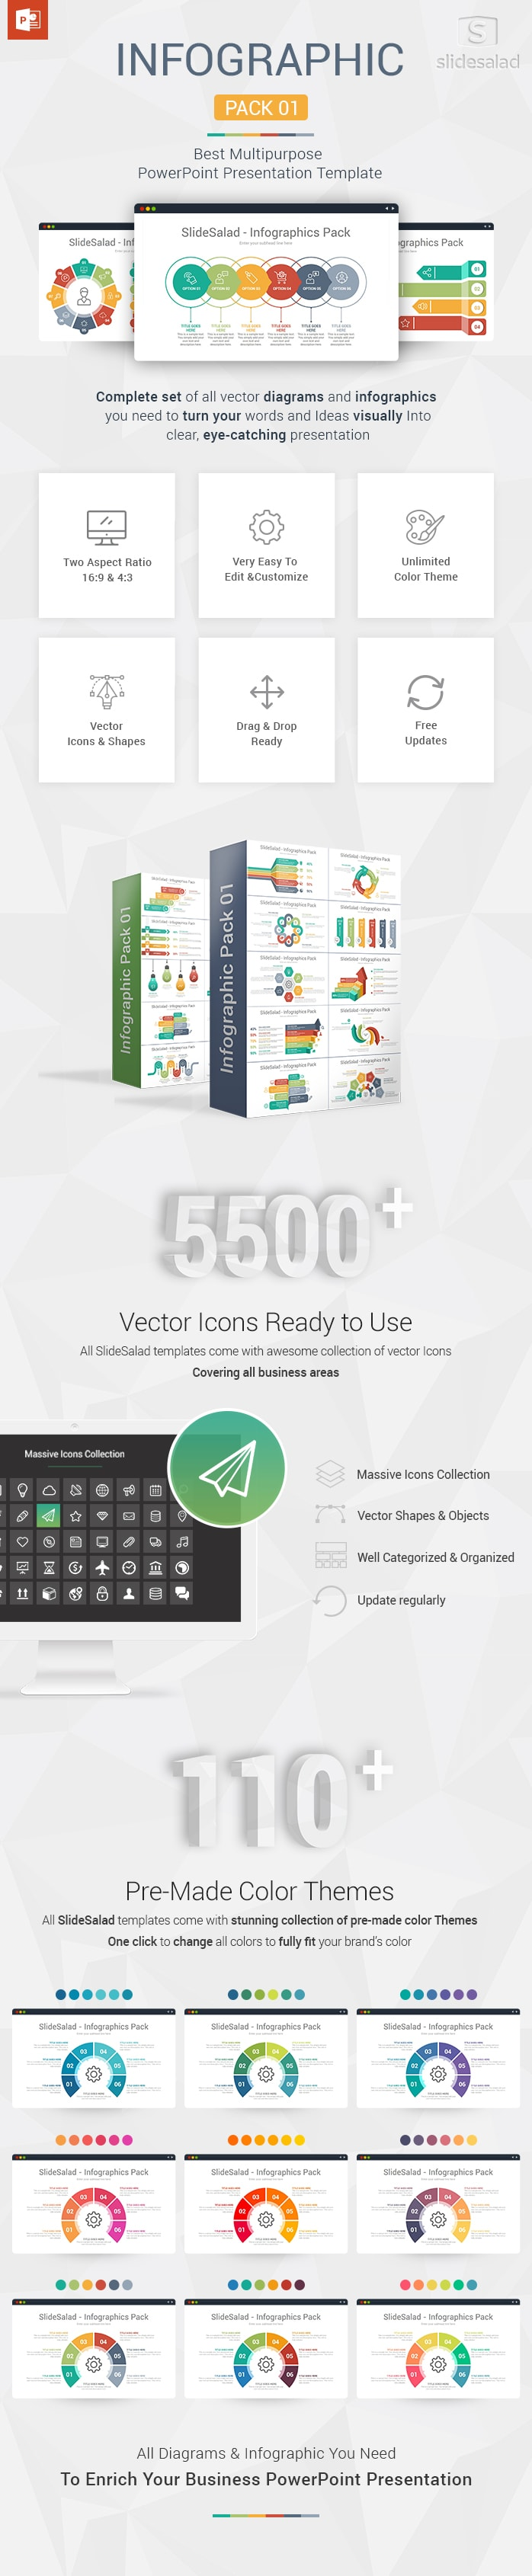 Infographic Designs Pack 01 Powerpoint Template For